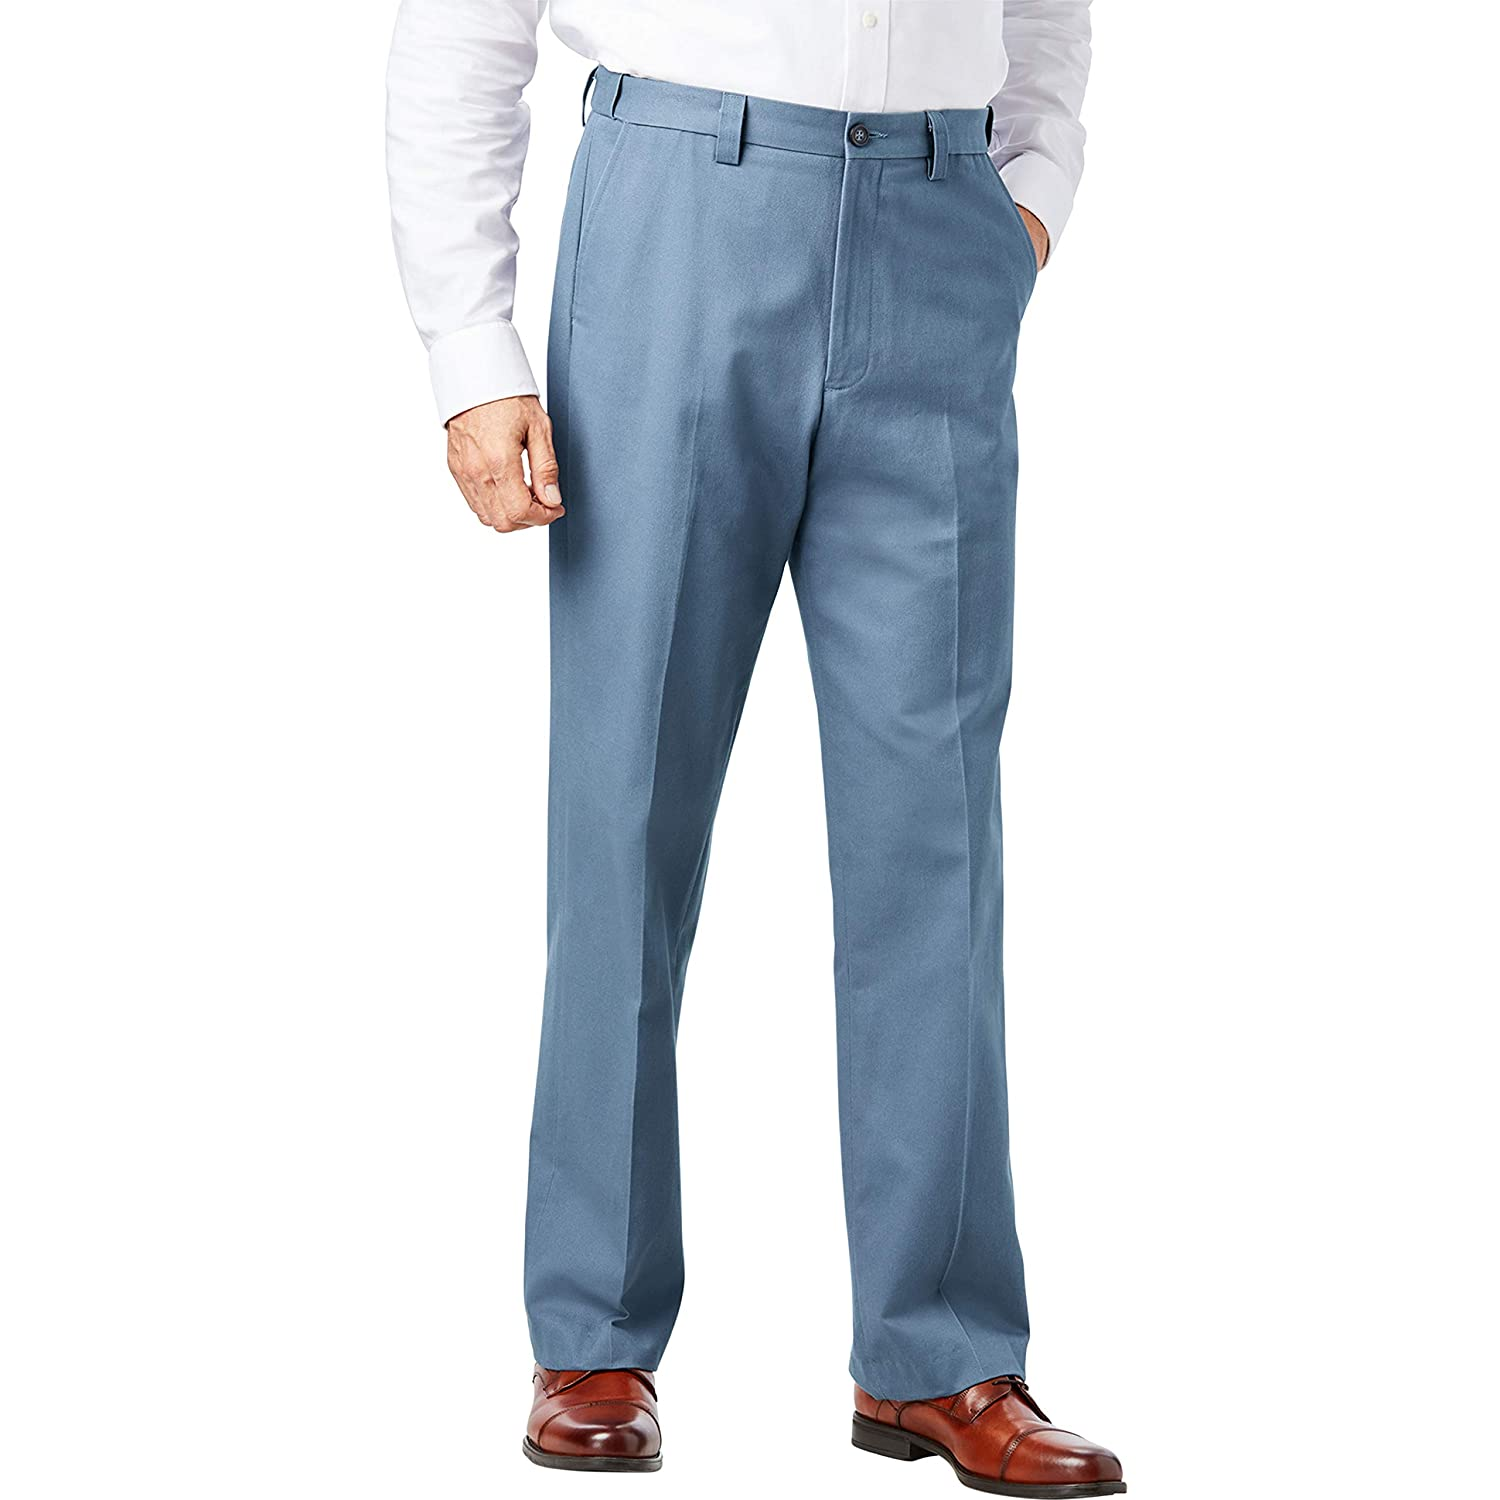 KingSize Mens Big /& Tall Relaxed Fit Wrinkle-Free Expandable Waist Plain Front Pants